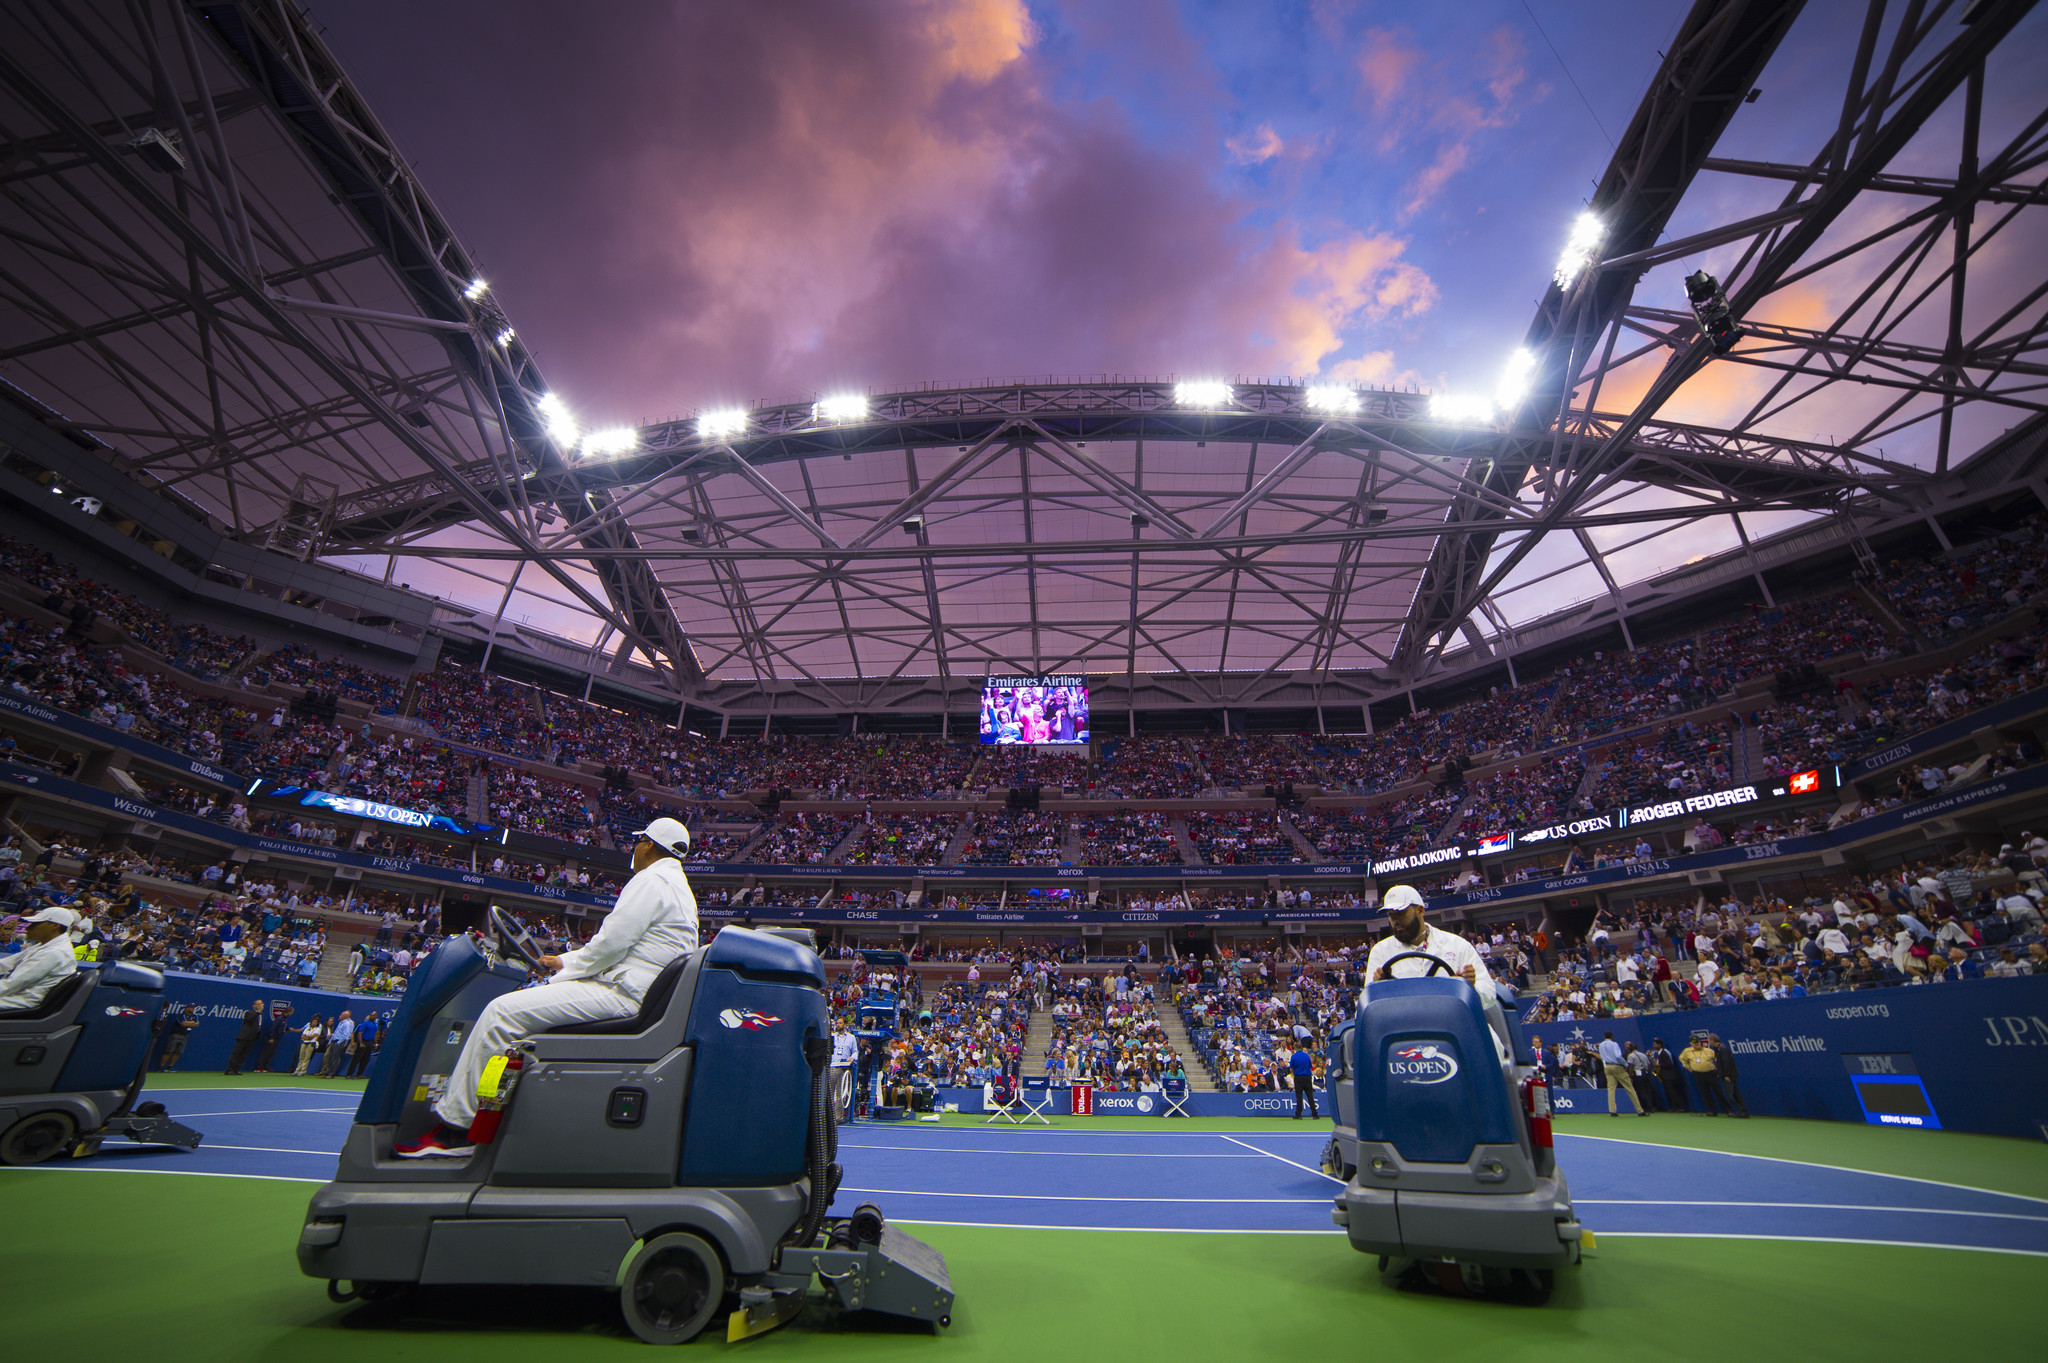 U.S. Open will still continue as scheduled, even after Wimbledon cancelation